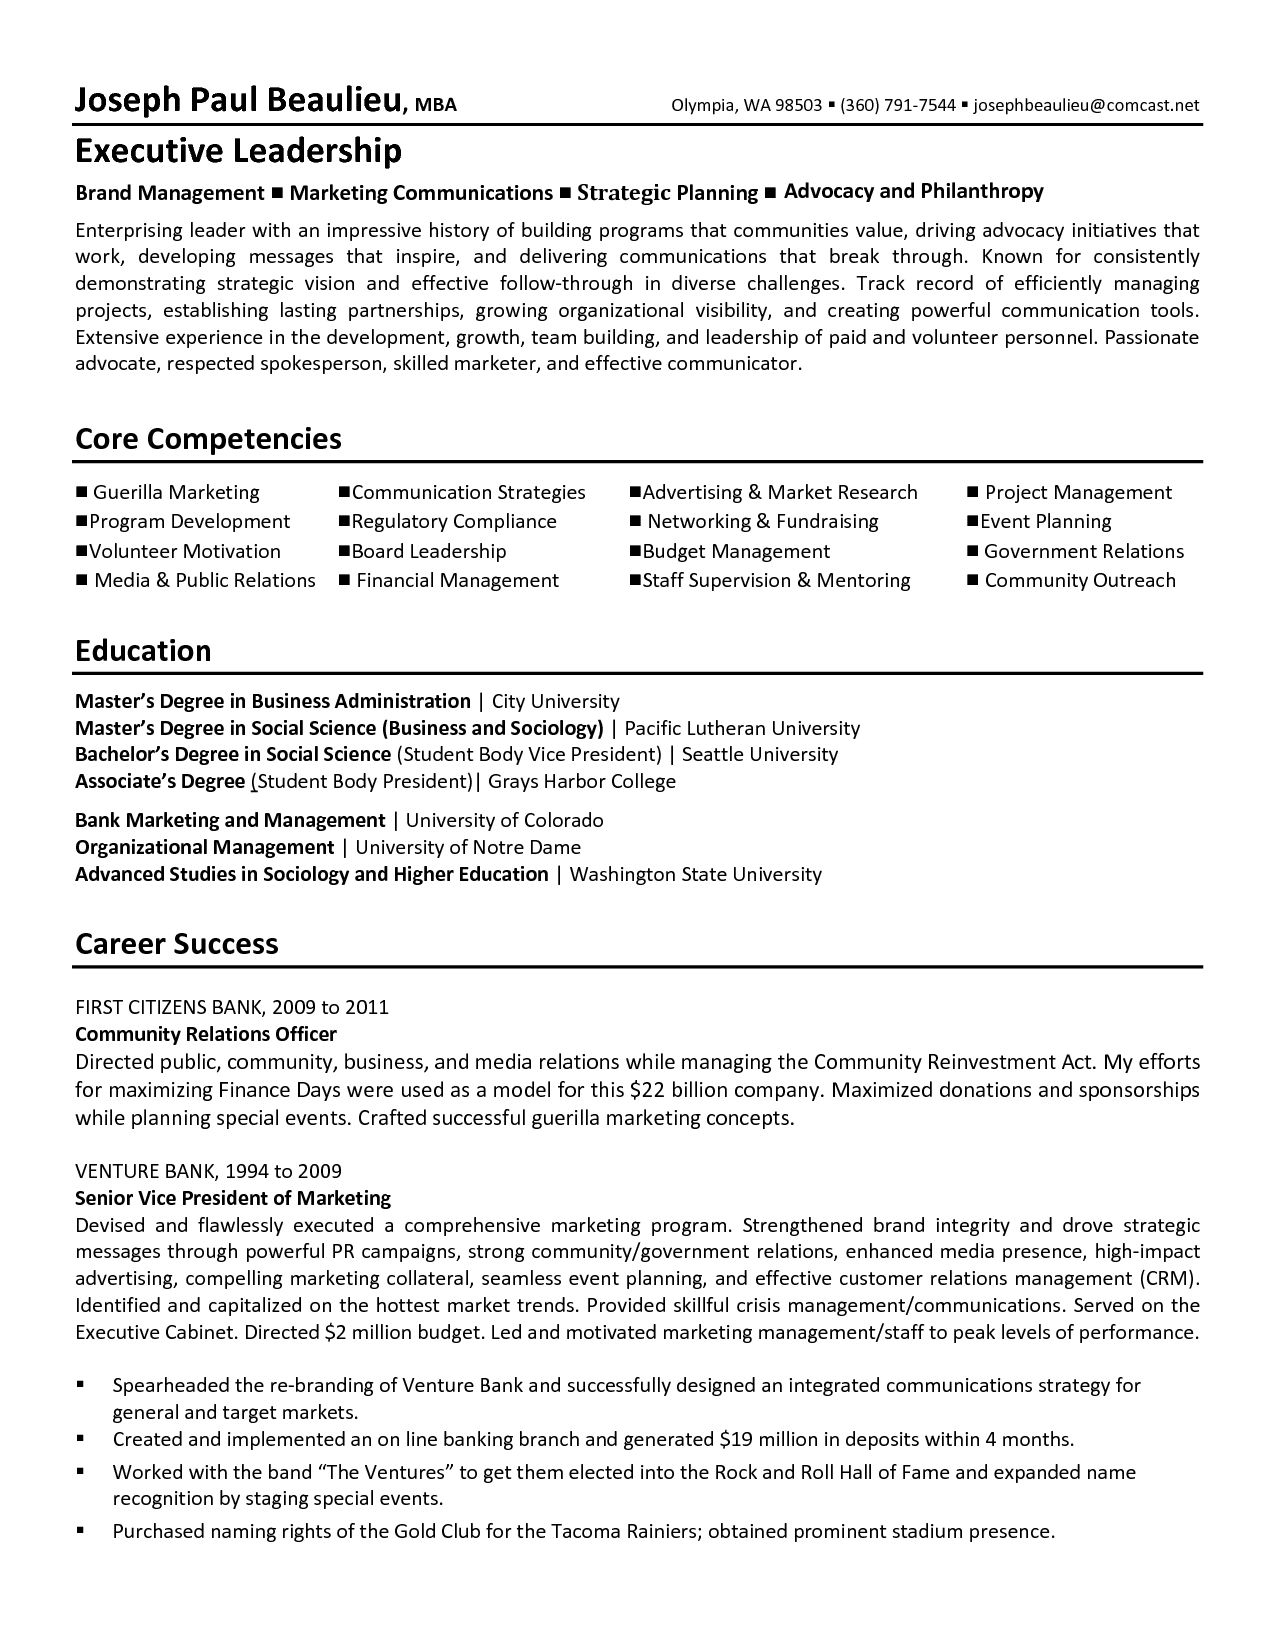 Nonprofit Resume non profit resumes nonprofit fundraising cause marketing communications non profit resume skills Resume Examples Nonprofit Examples Nonprofit Resume Resumeexamples